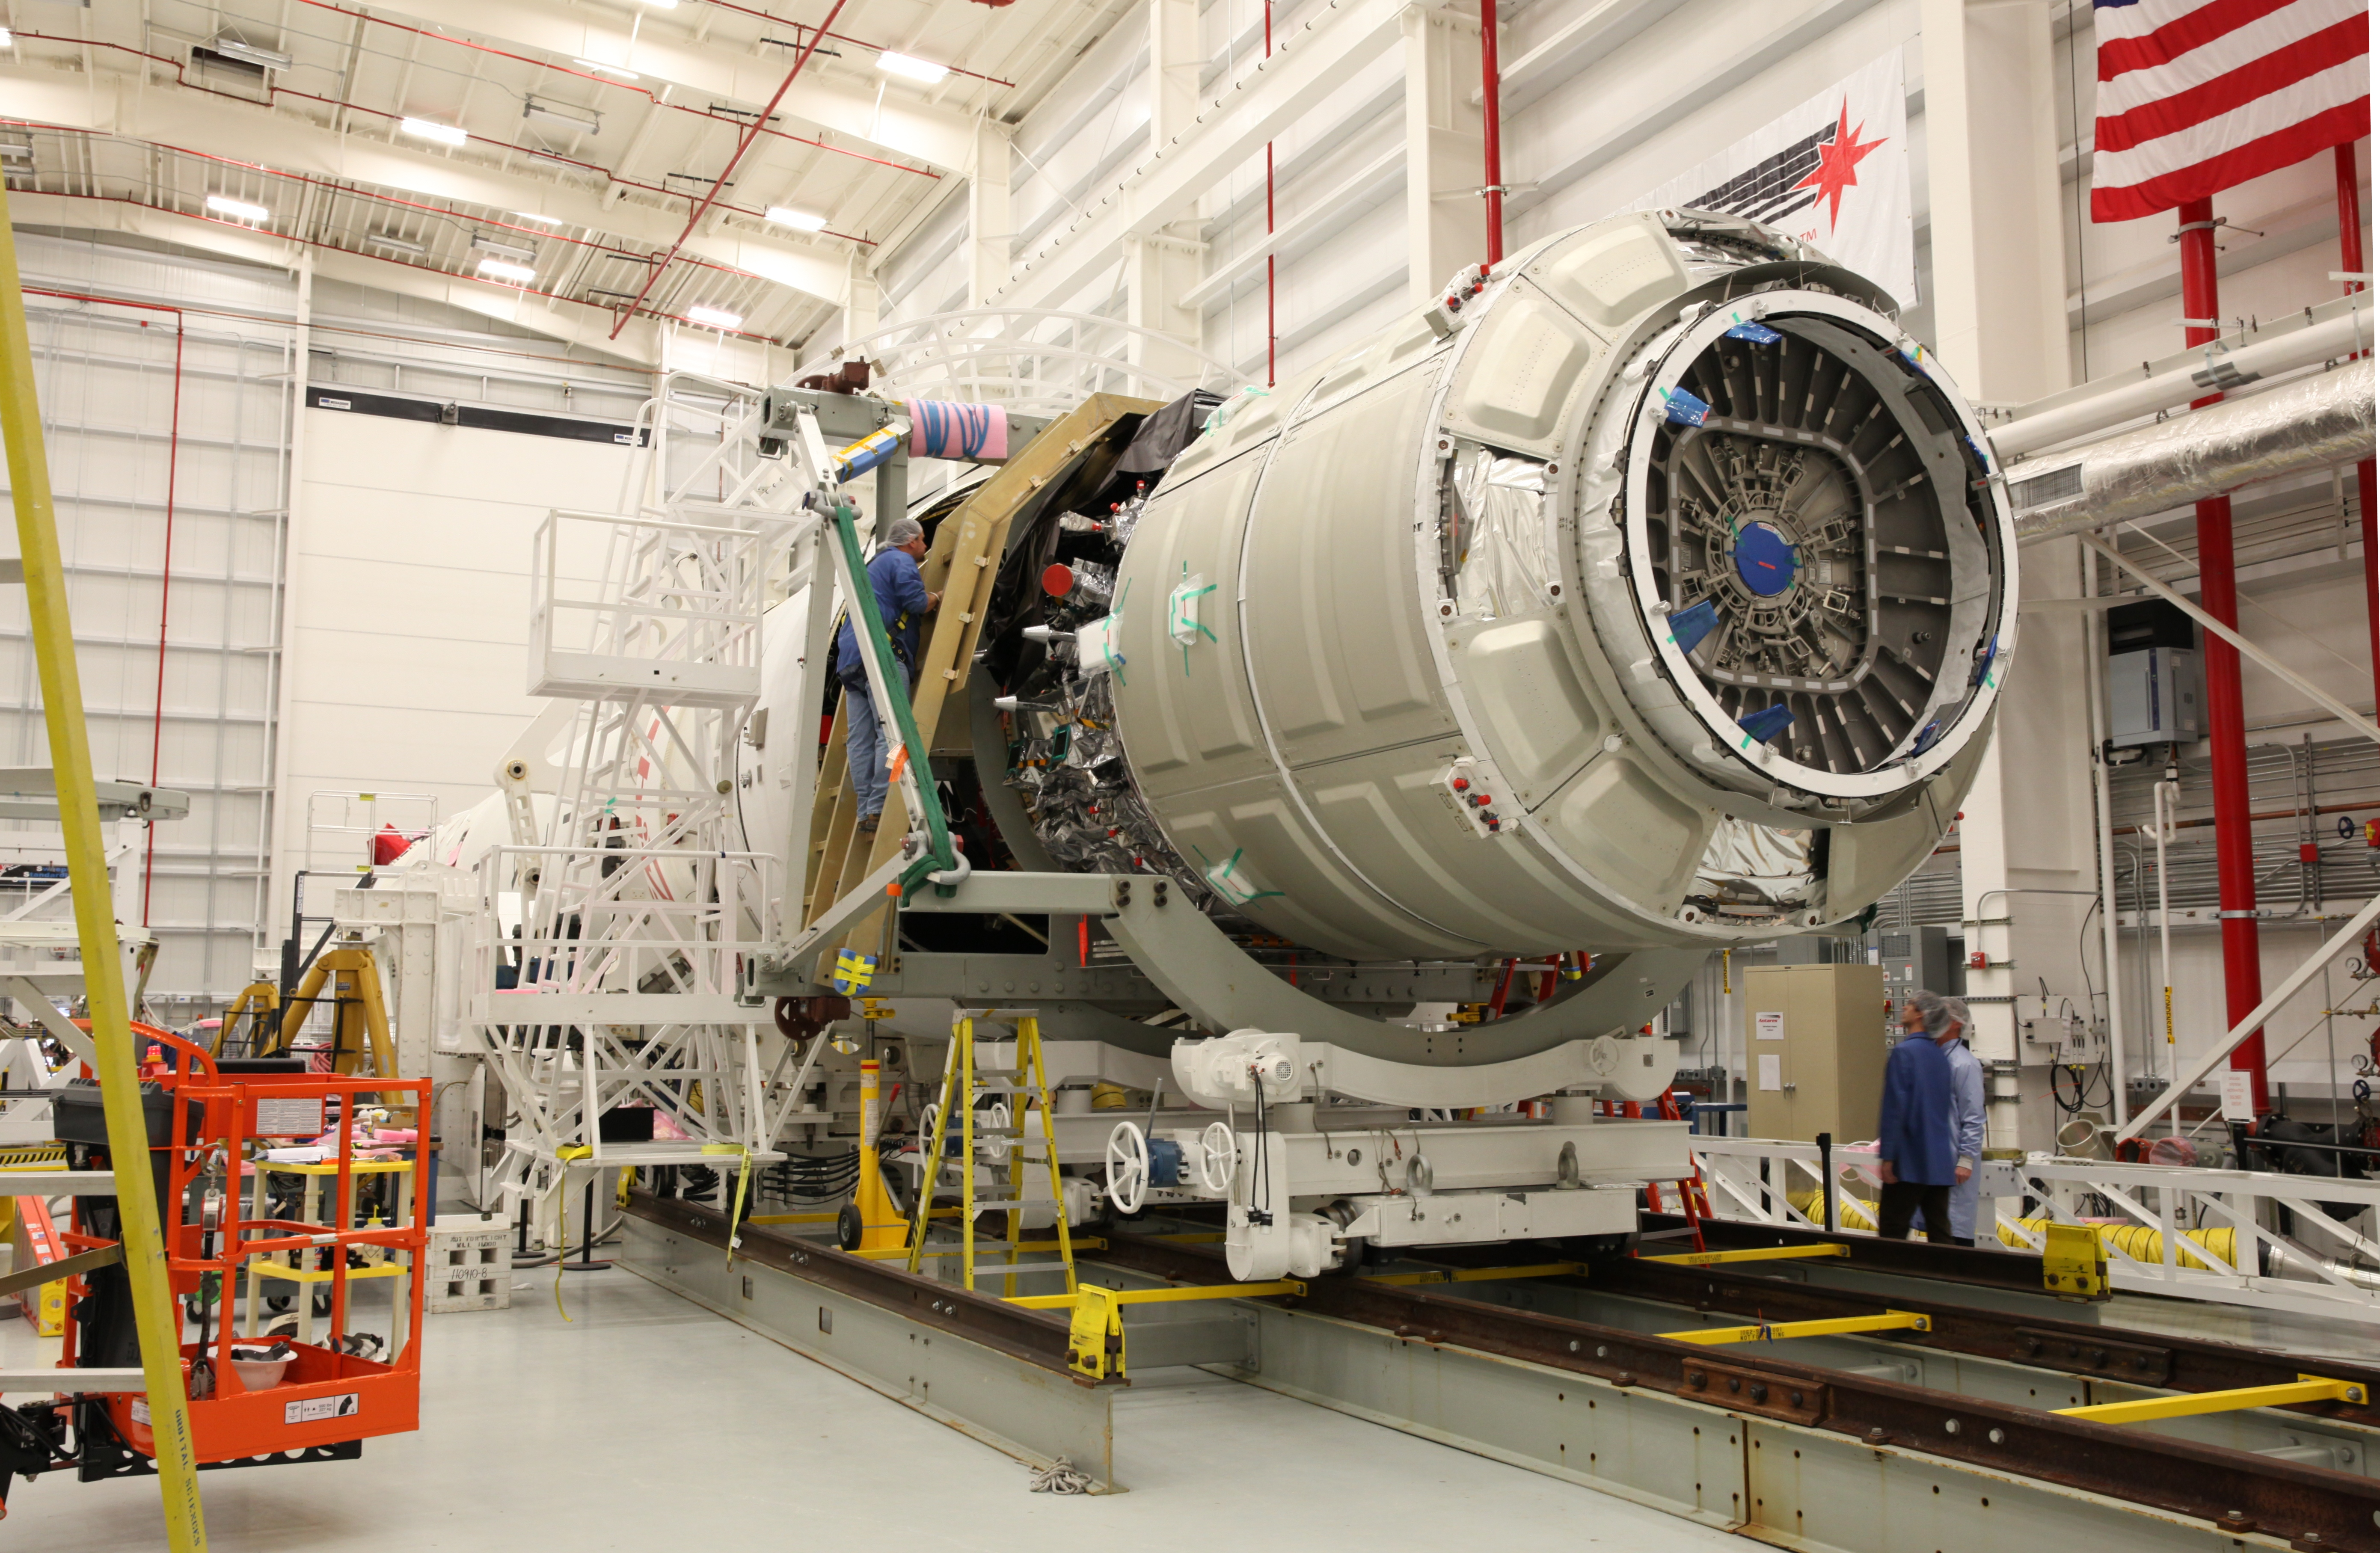 Orb-1 Cygnus mated to Antares. Credit: Orbital Sciences Corporation